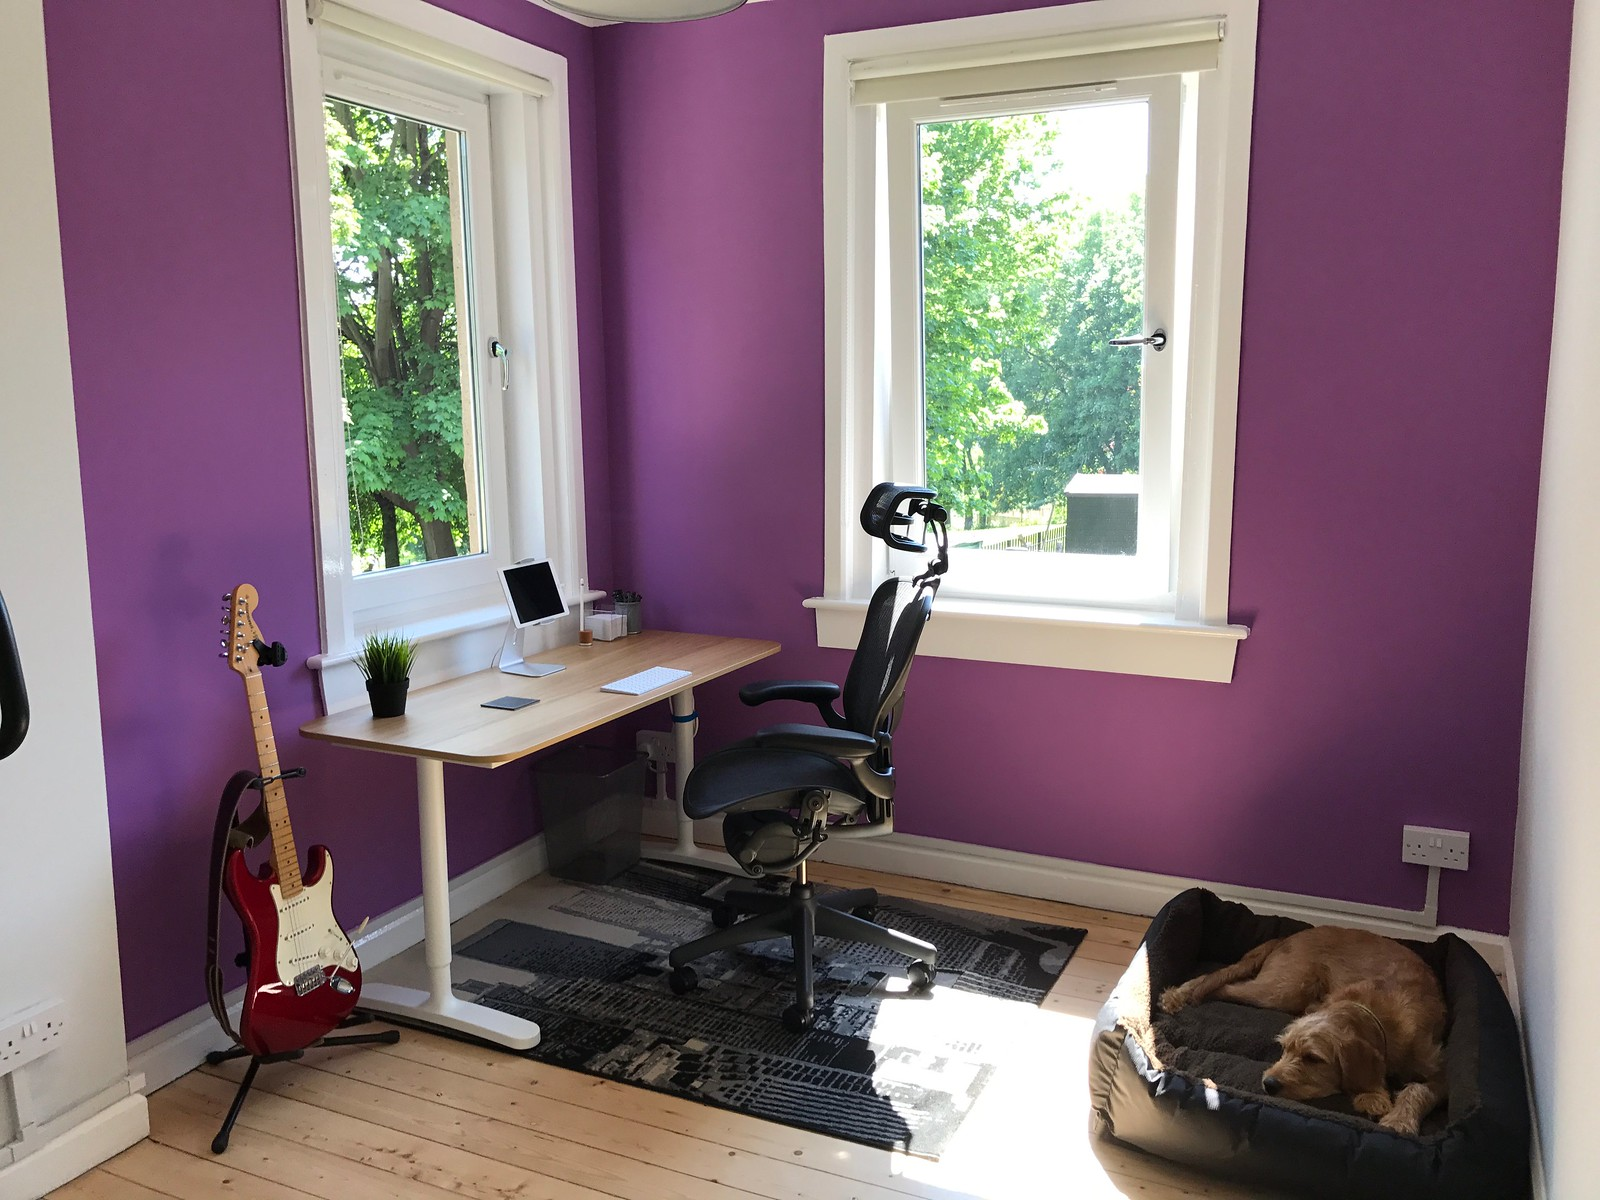 The finished office, closely matching the concept, showing the desk, chair, guitar, and dog in his new bed. The two adjoining walls which bracket the workspace are painted a cheerful purple, with the remaining walls a very soft grey. The woodwork and ceiling are white. The floor has been restored to its natural pine planks, varnished.